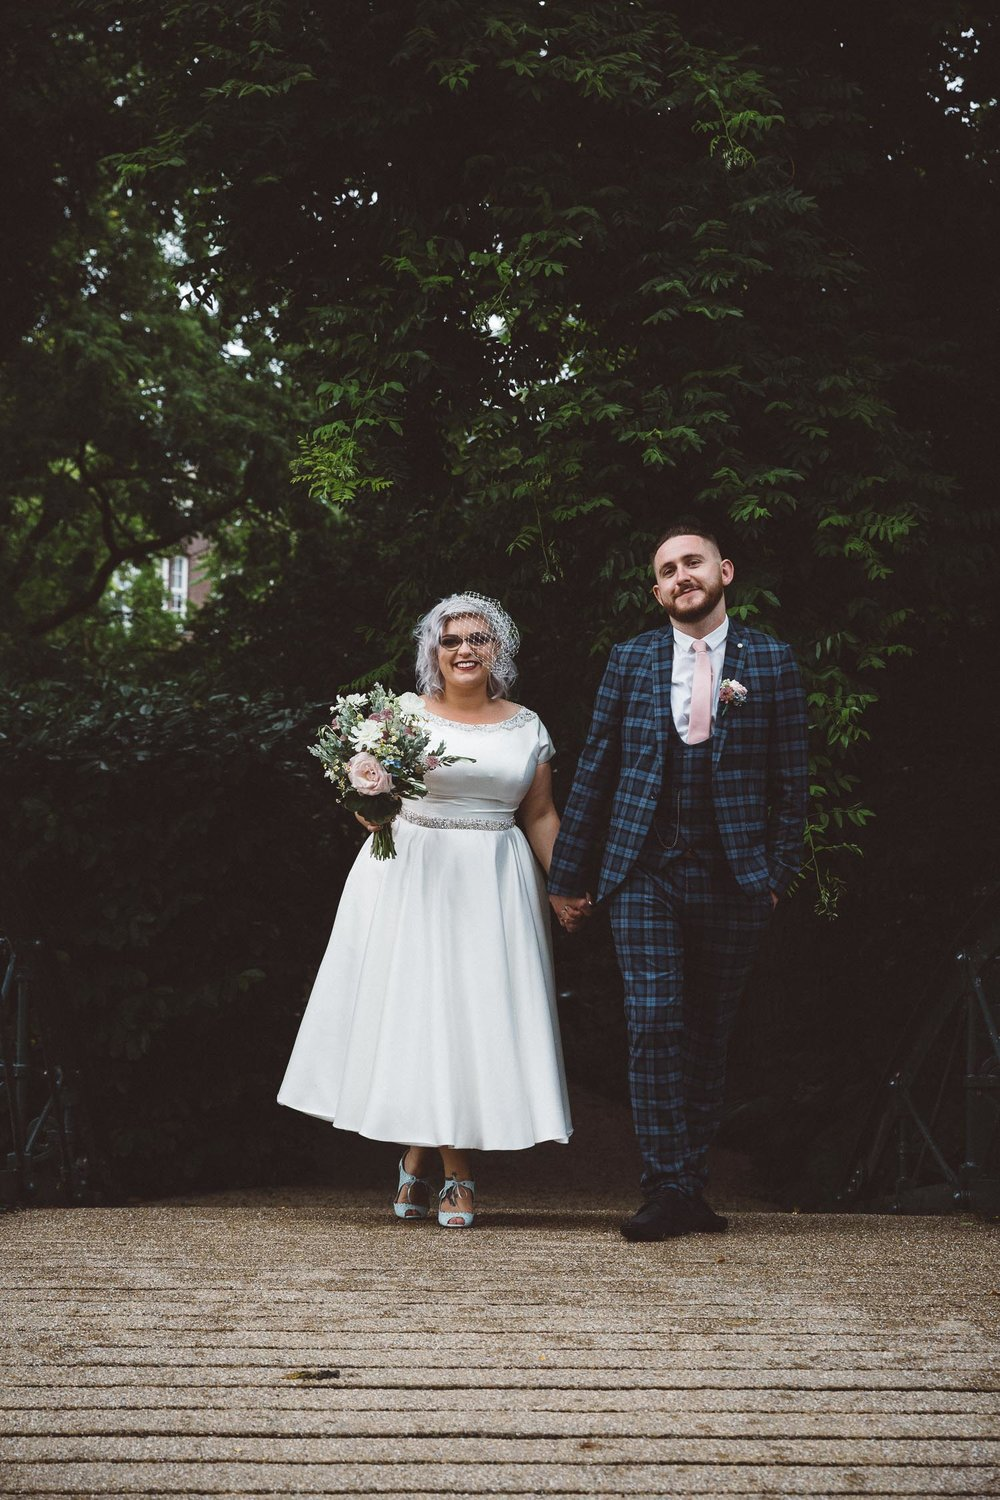 Wedding Bethan and Mike - Hortus Botanicus Amsterdam